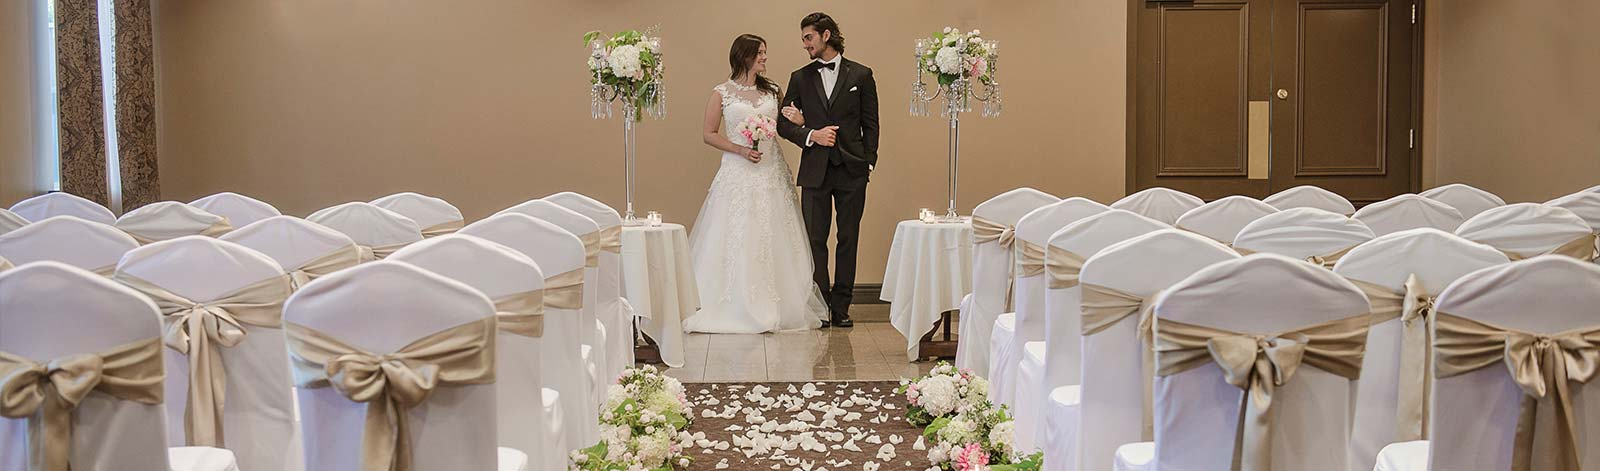 Weddings at The Parlour Inn in Stratford Ontario